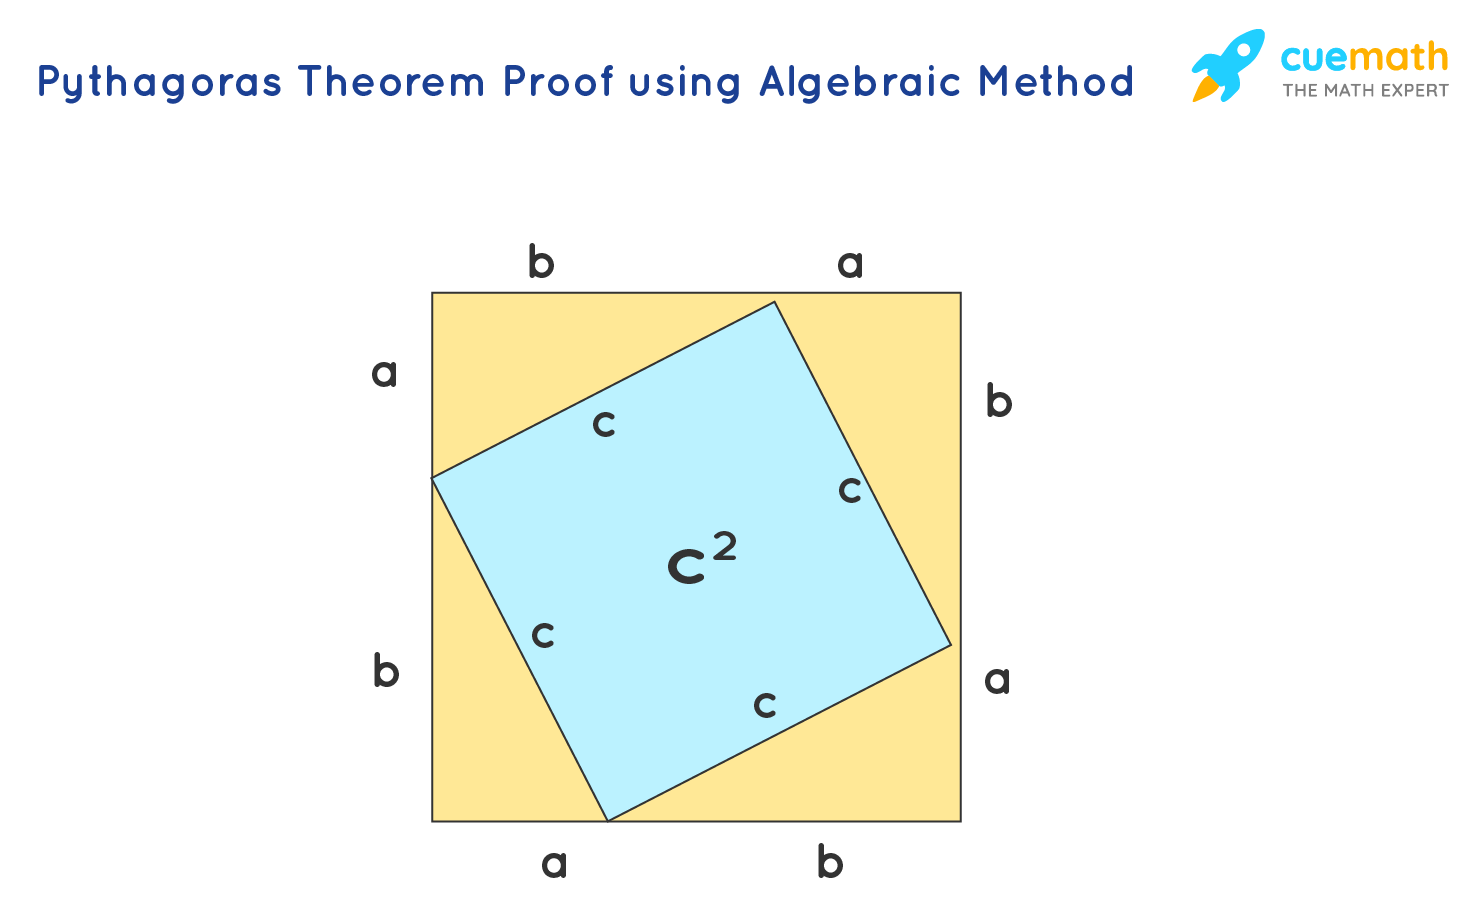 Theorem Proof using Algebraic Method